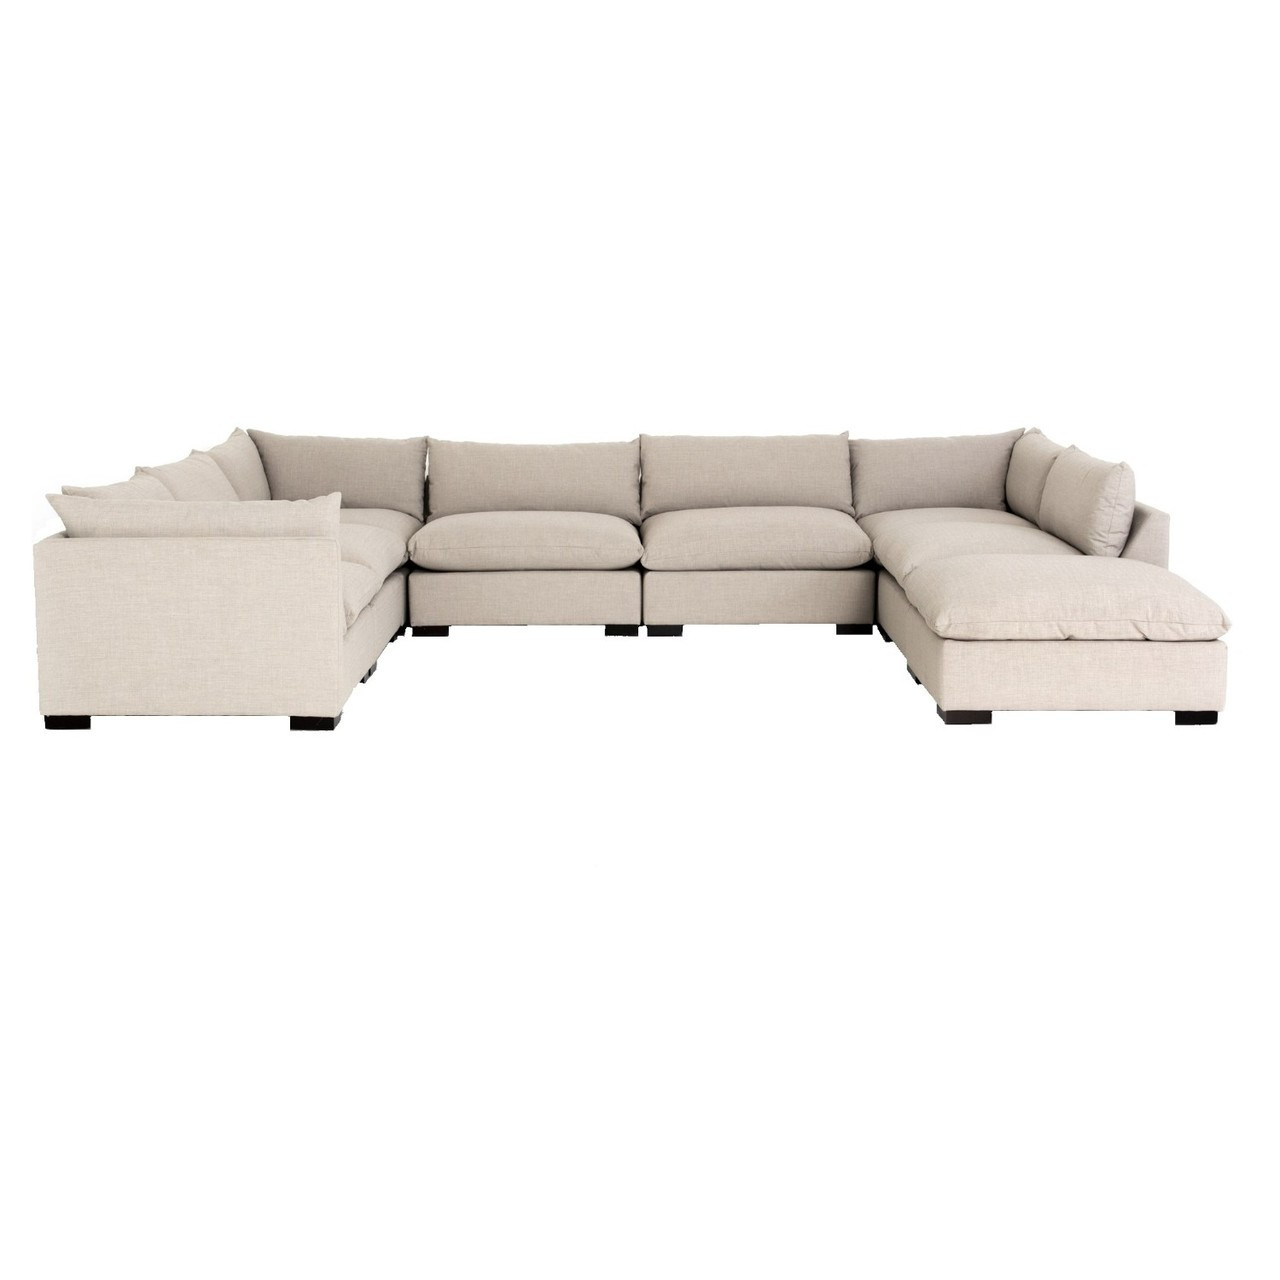 Westworld Modern Beige 8 Piece U Shape Sectional Sofa 156